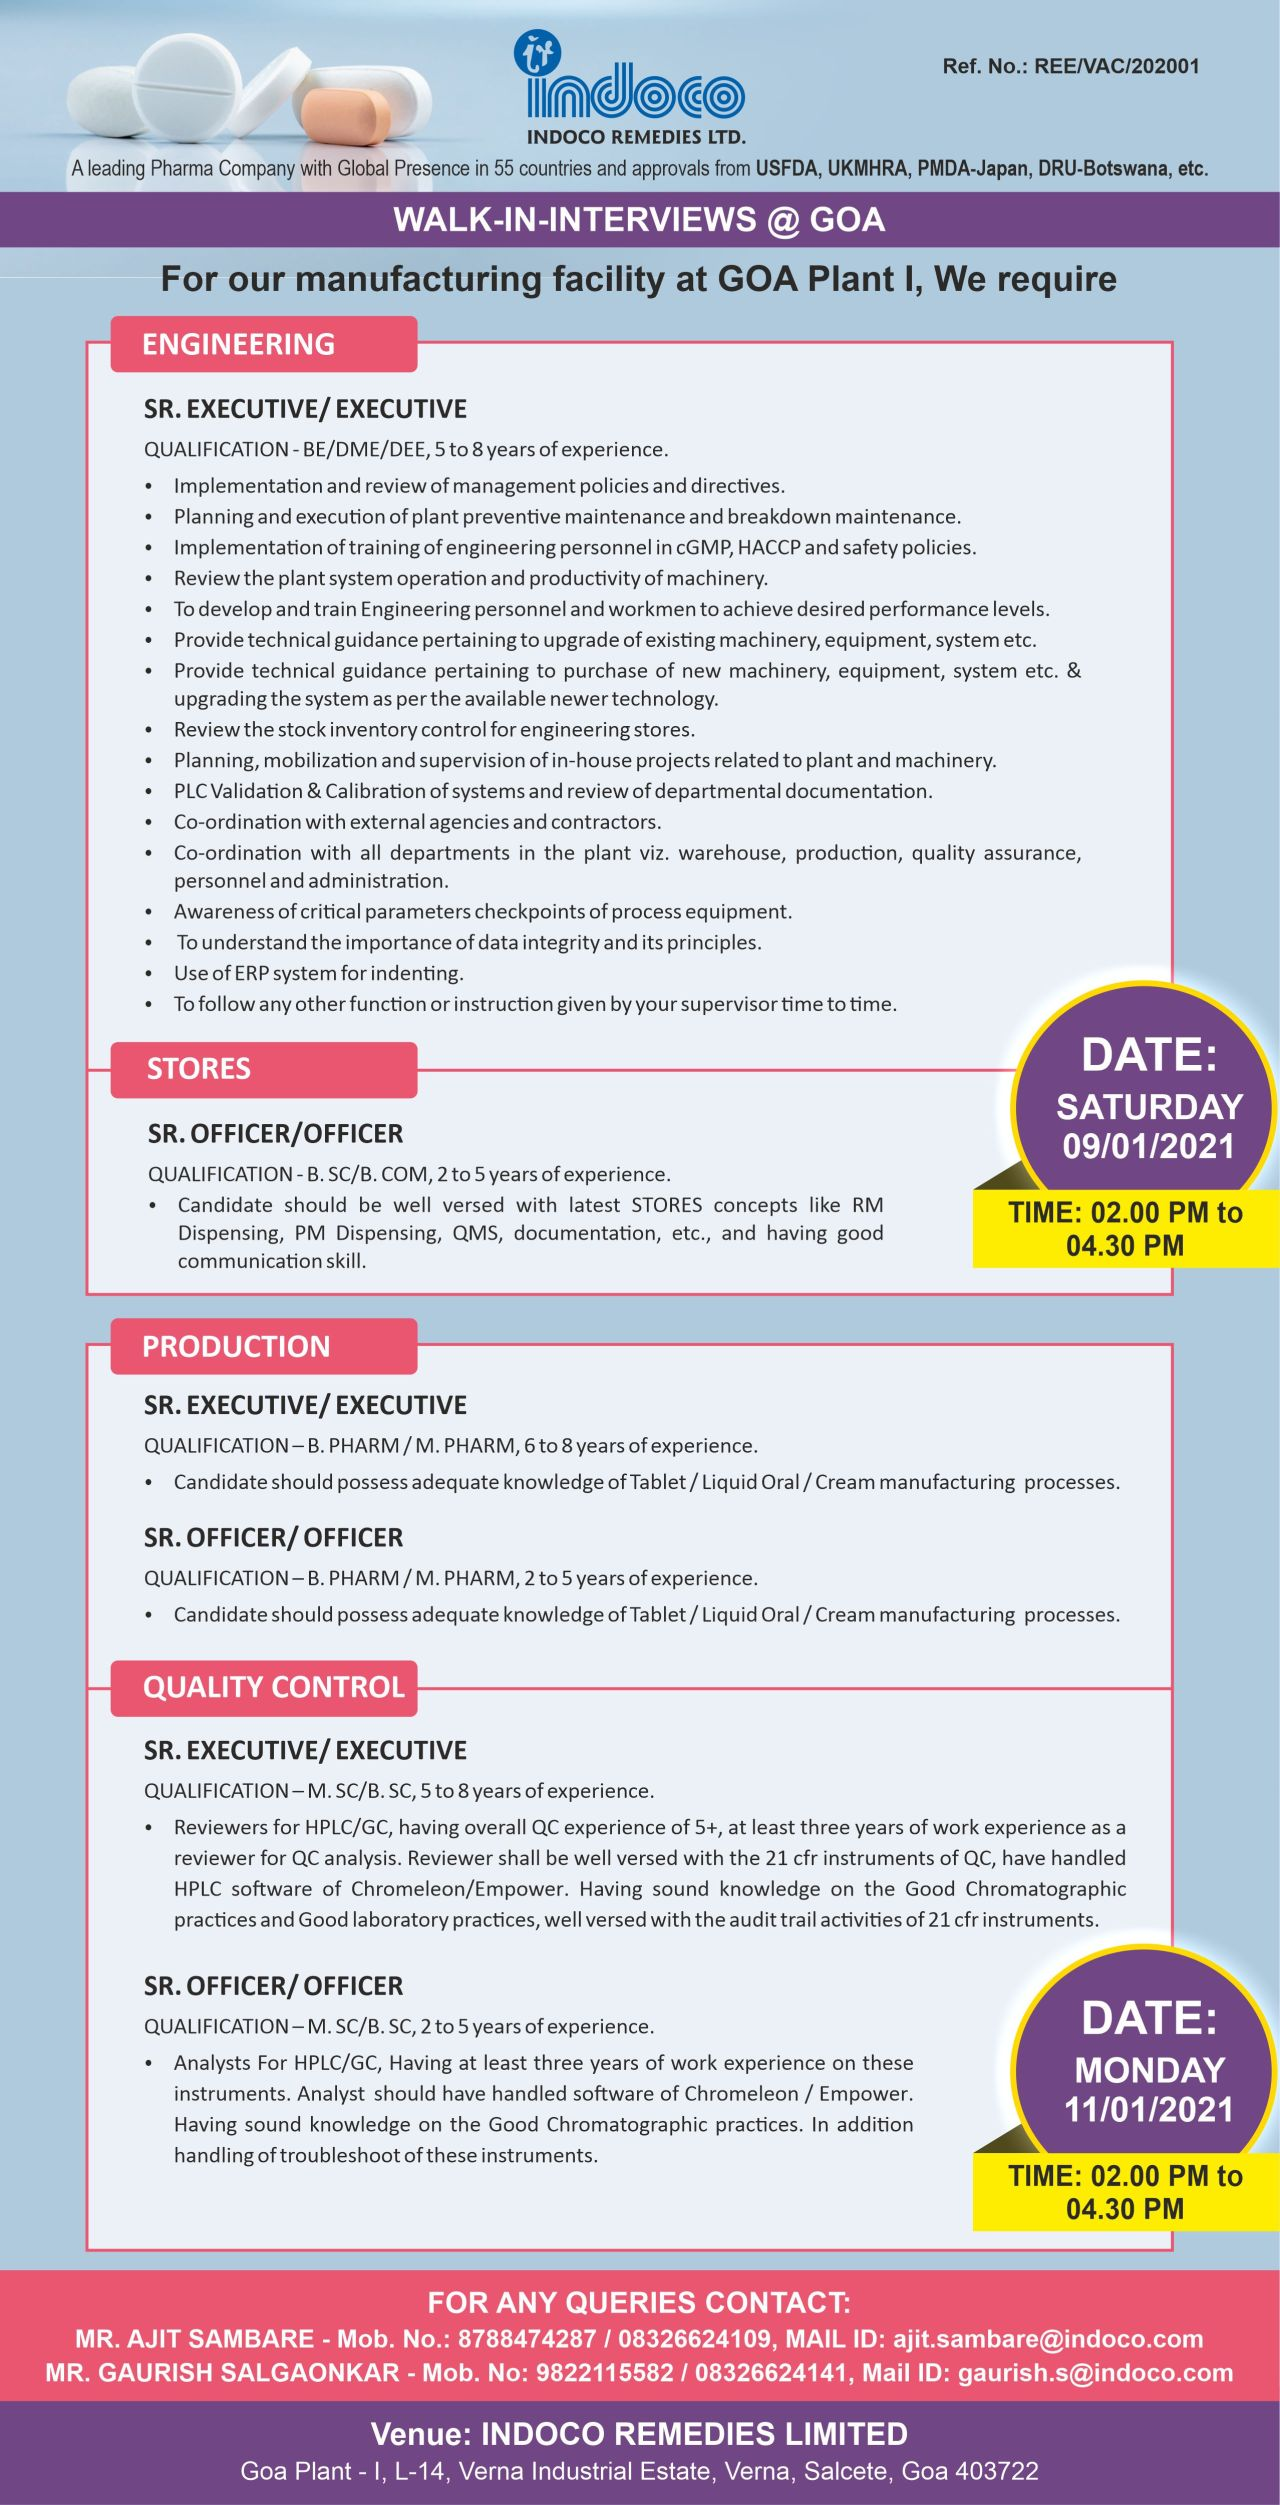 Indoco Remedies Limited – Walk-In Interviews for Production, Quality Control, Engineering, Store Department on 09th & 11th Jan' 2021